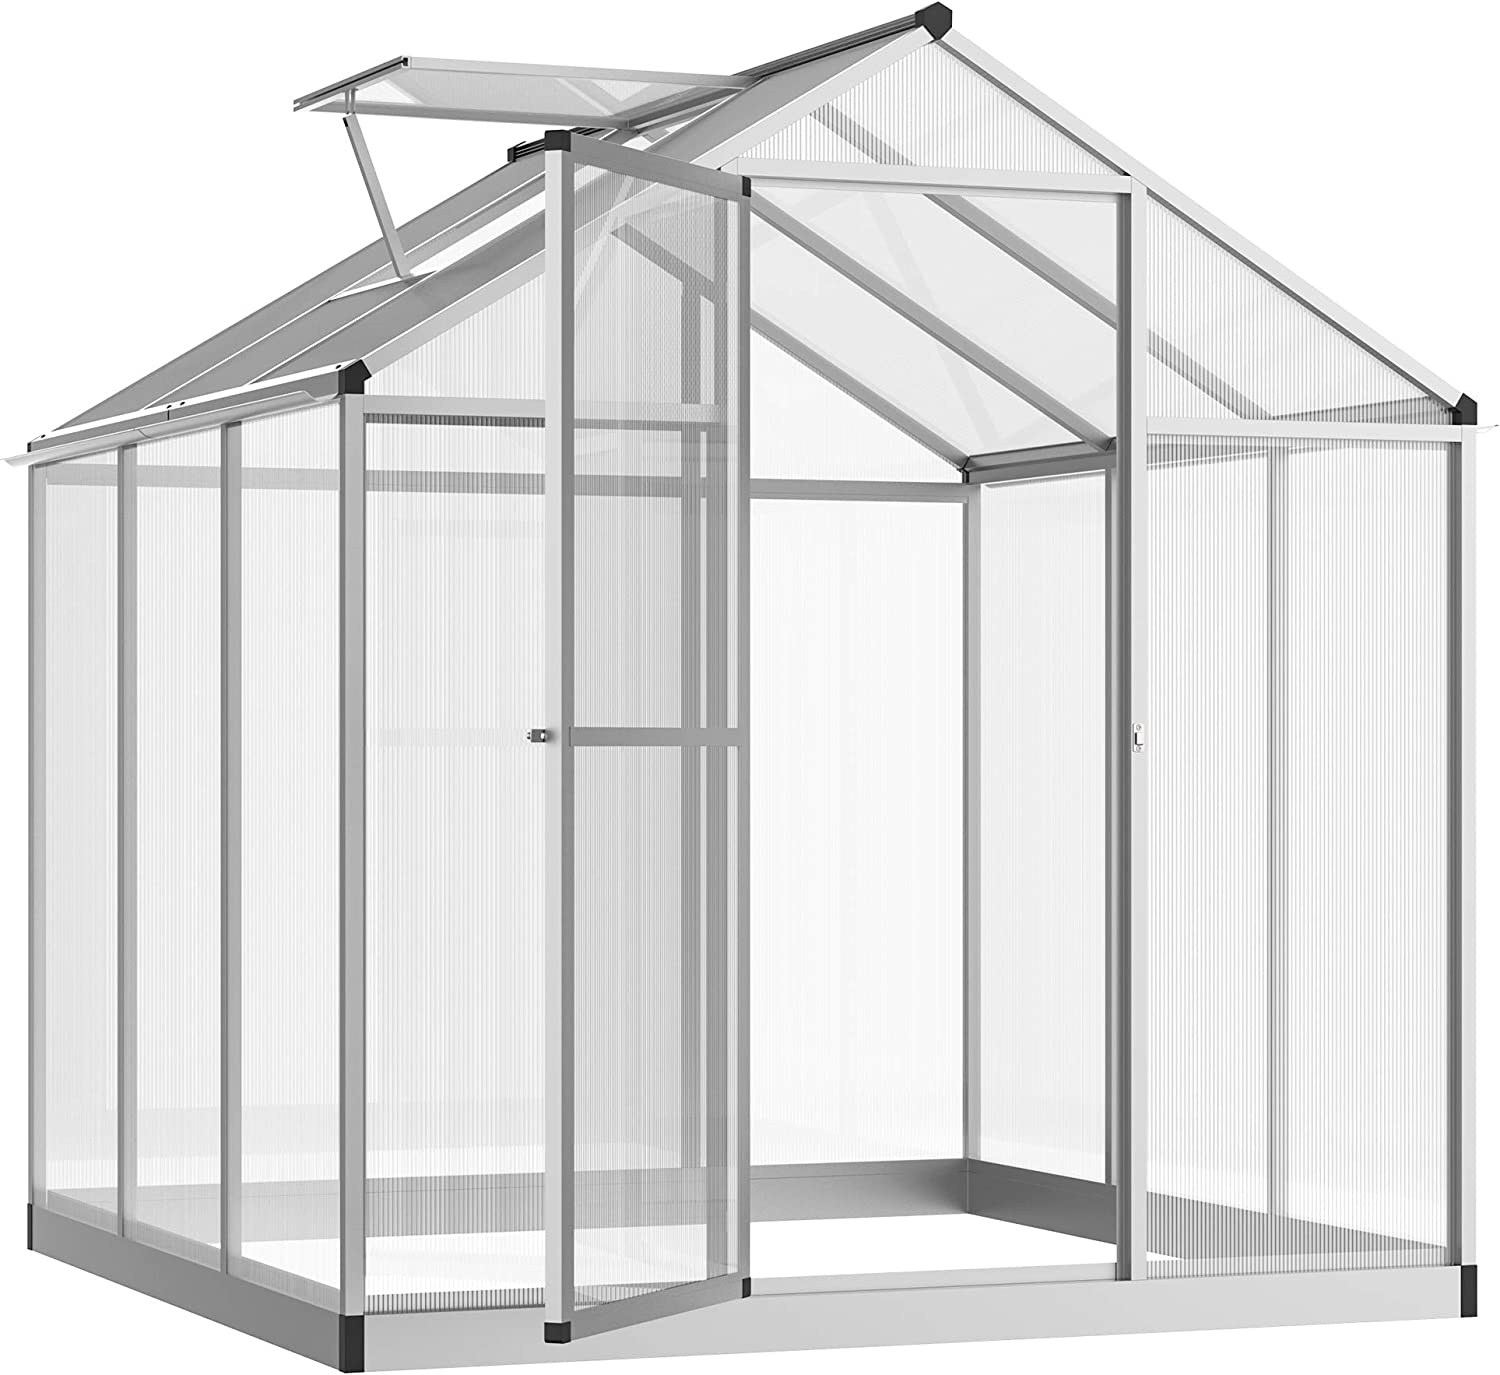 Outsunny 2021 6' Ranking TOP4 L x W Outdoor Walk-in with Garden Roof Greenhouse